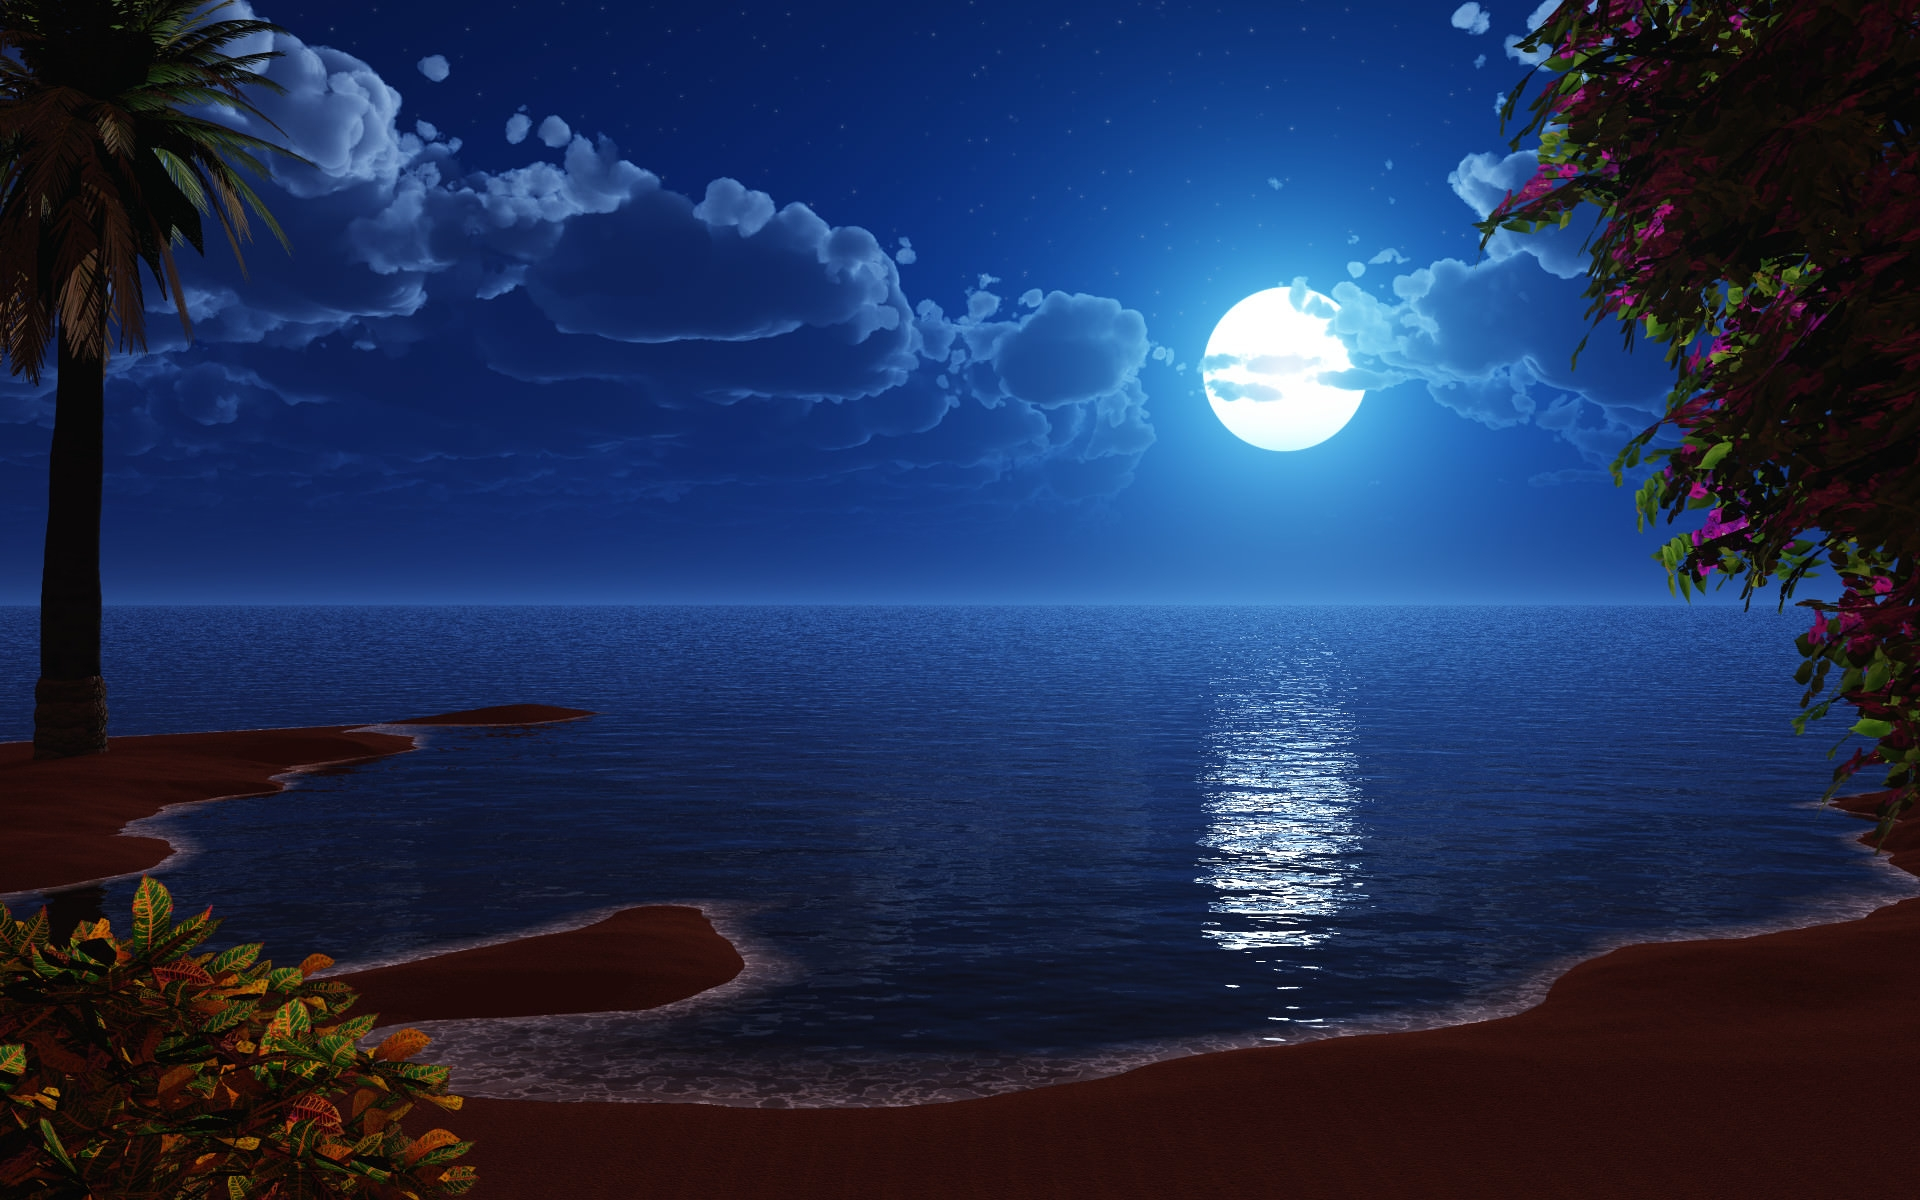 nature-beautiful-moon-hd-desktop-wallpaper-background